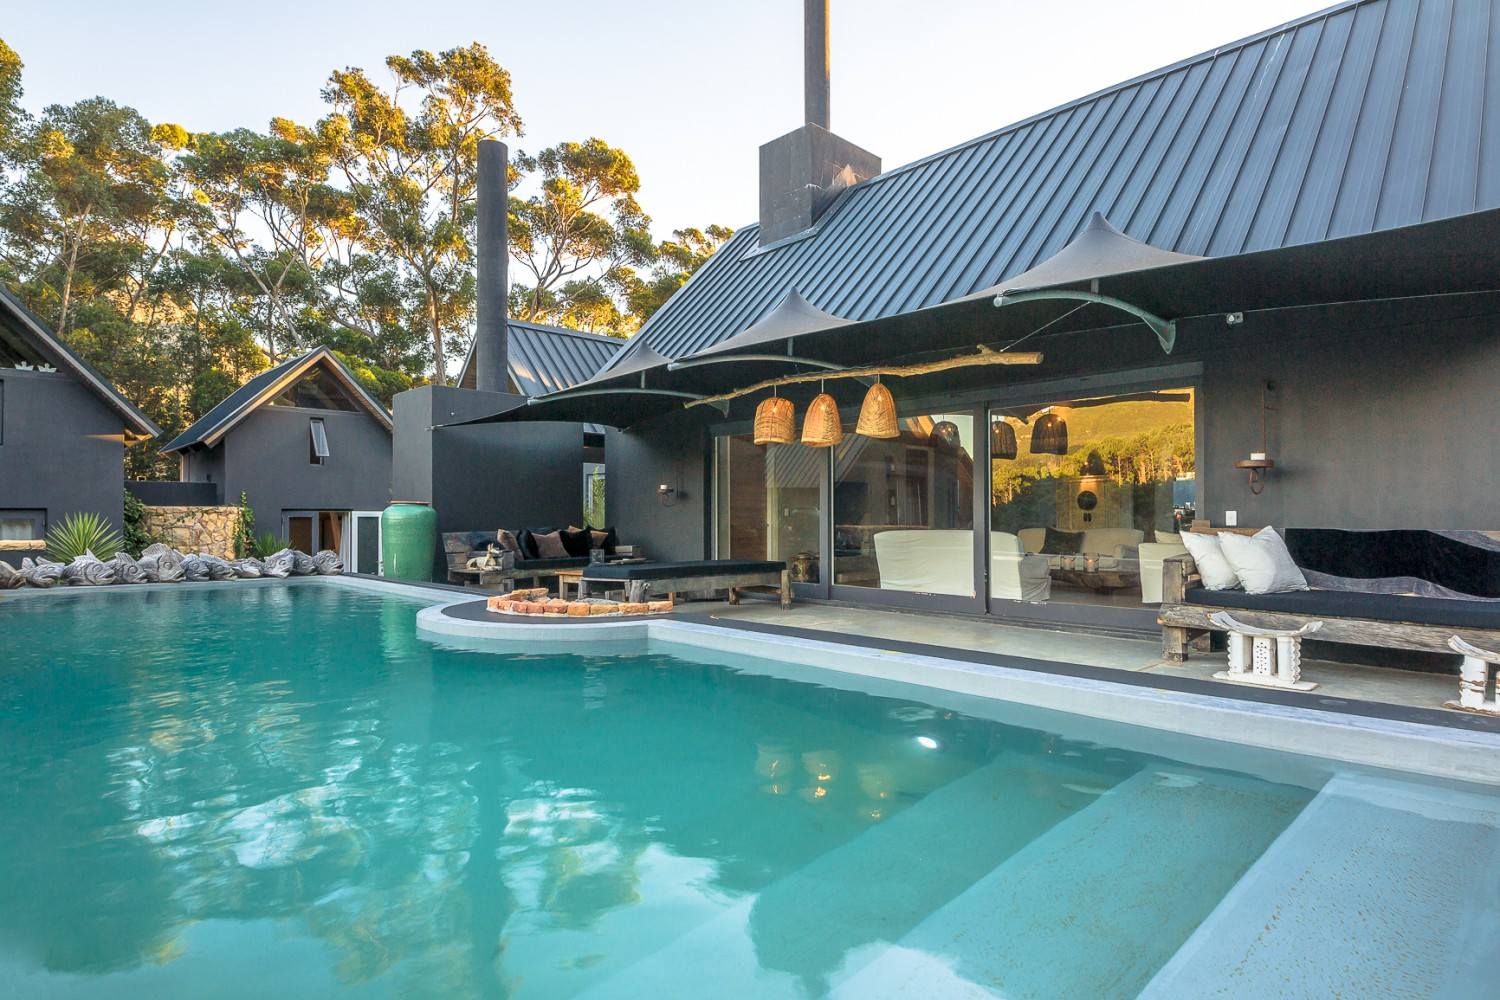 Holiday Villa Farriers Way Hout Bay Self Catering Cape Town Villa Rentals Cape Town